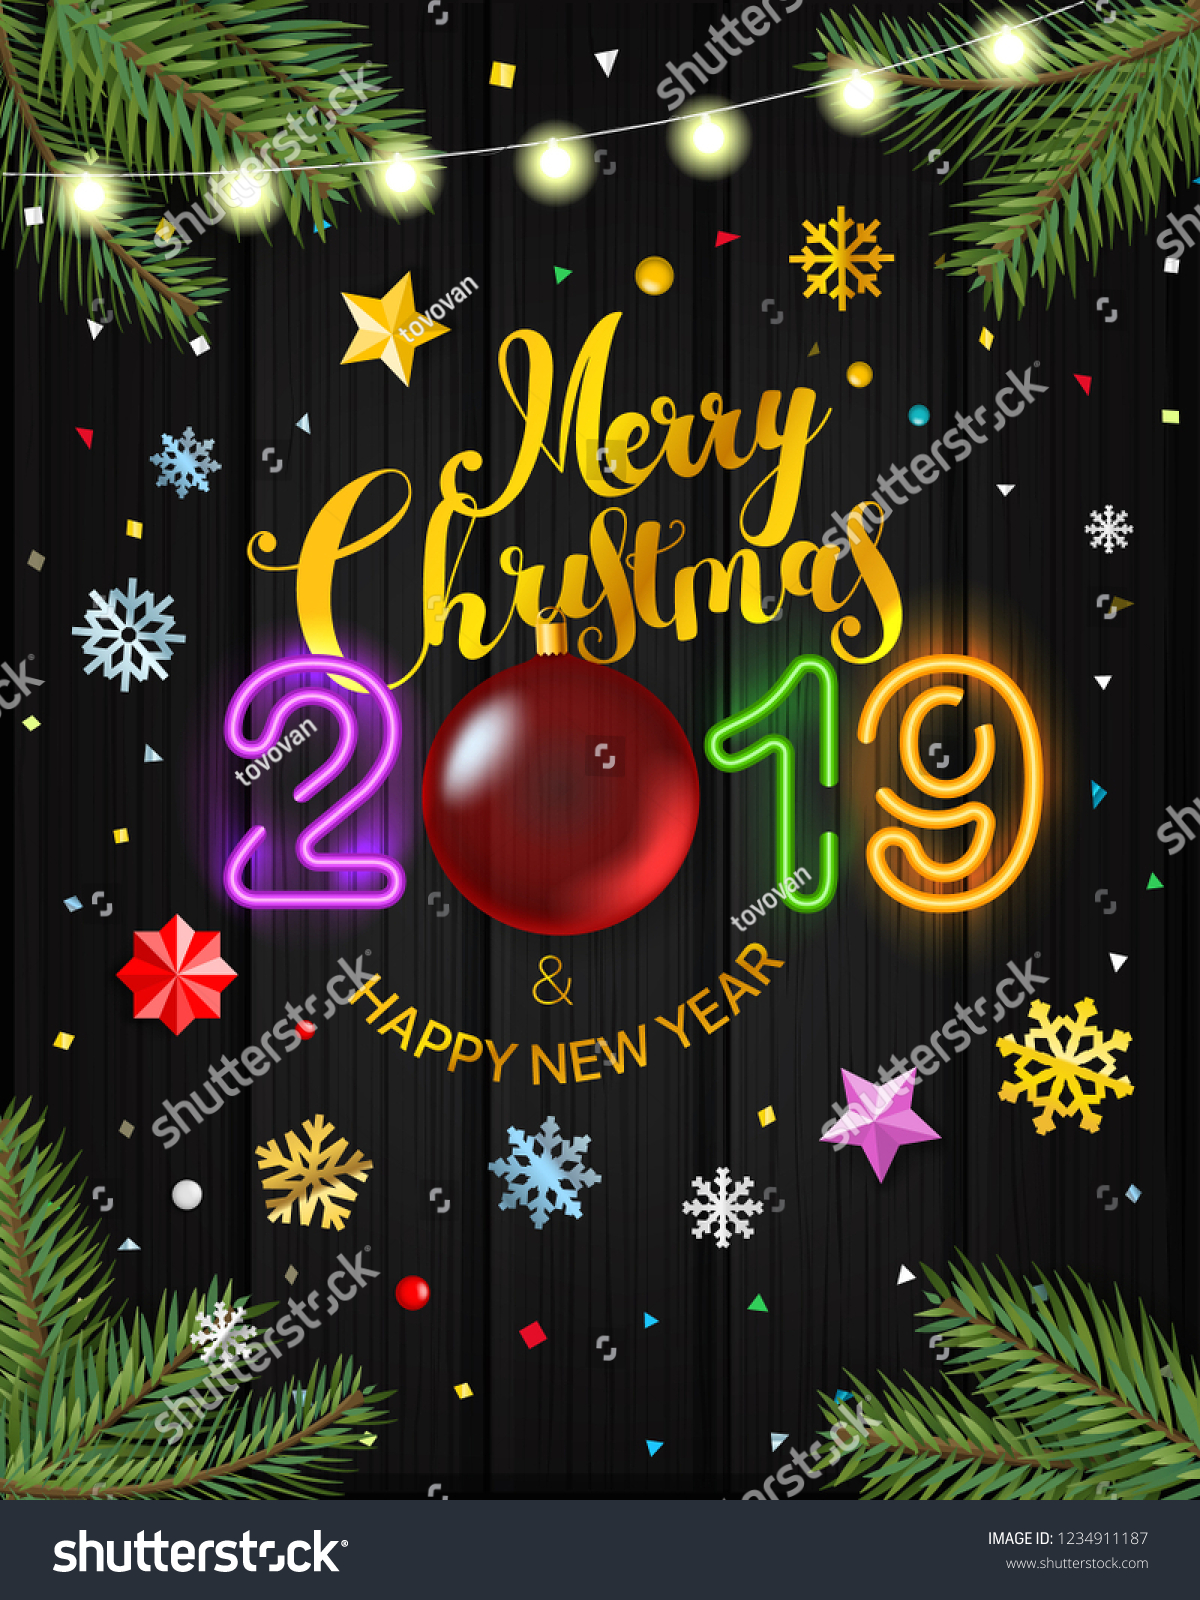 Merry Christmas Wishes 2019.Merry Christmas Happy New Year 2019 Stock Vector Royalty